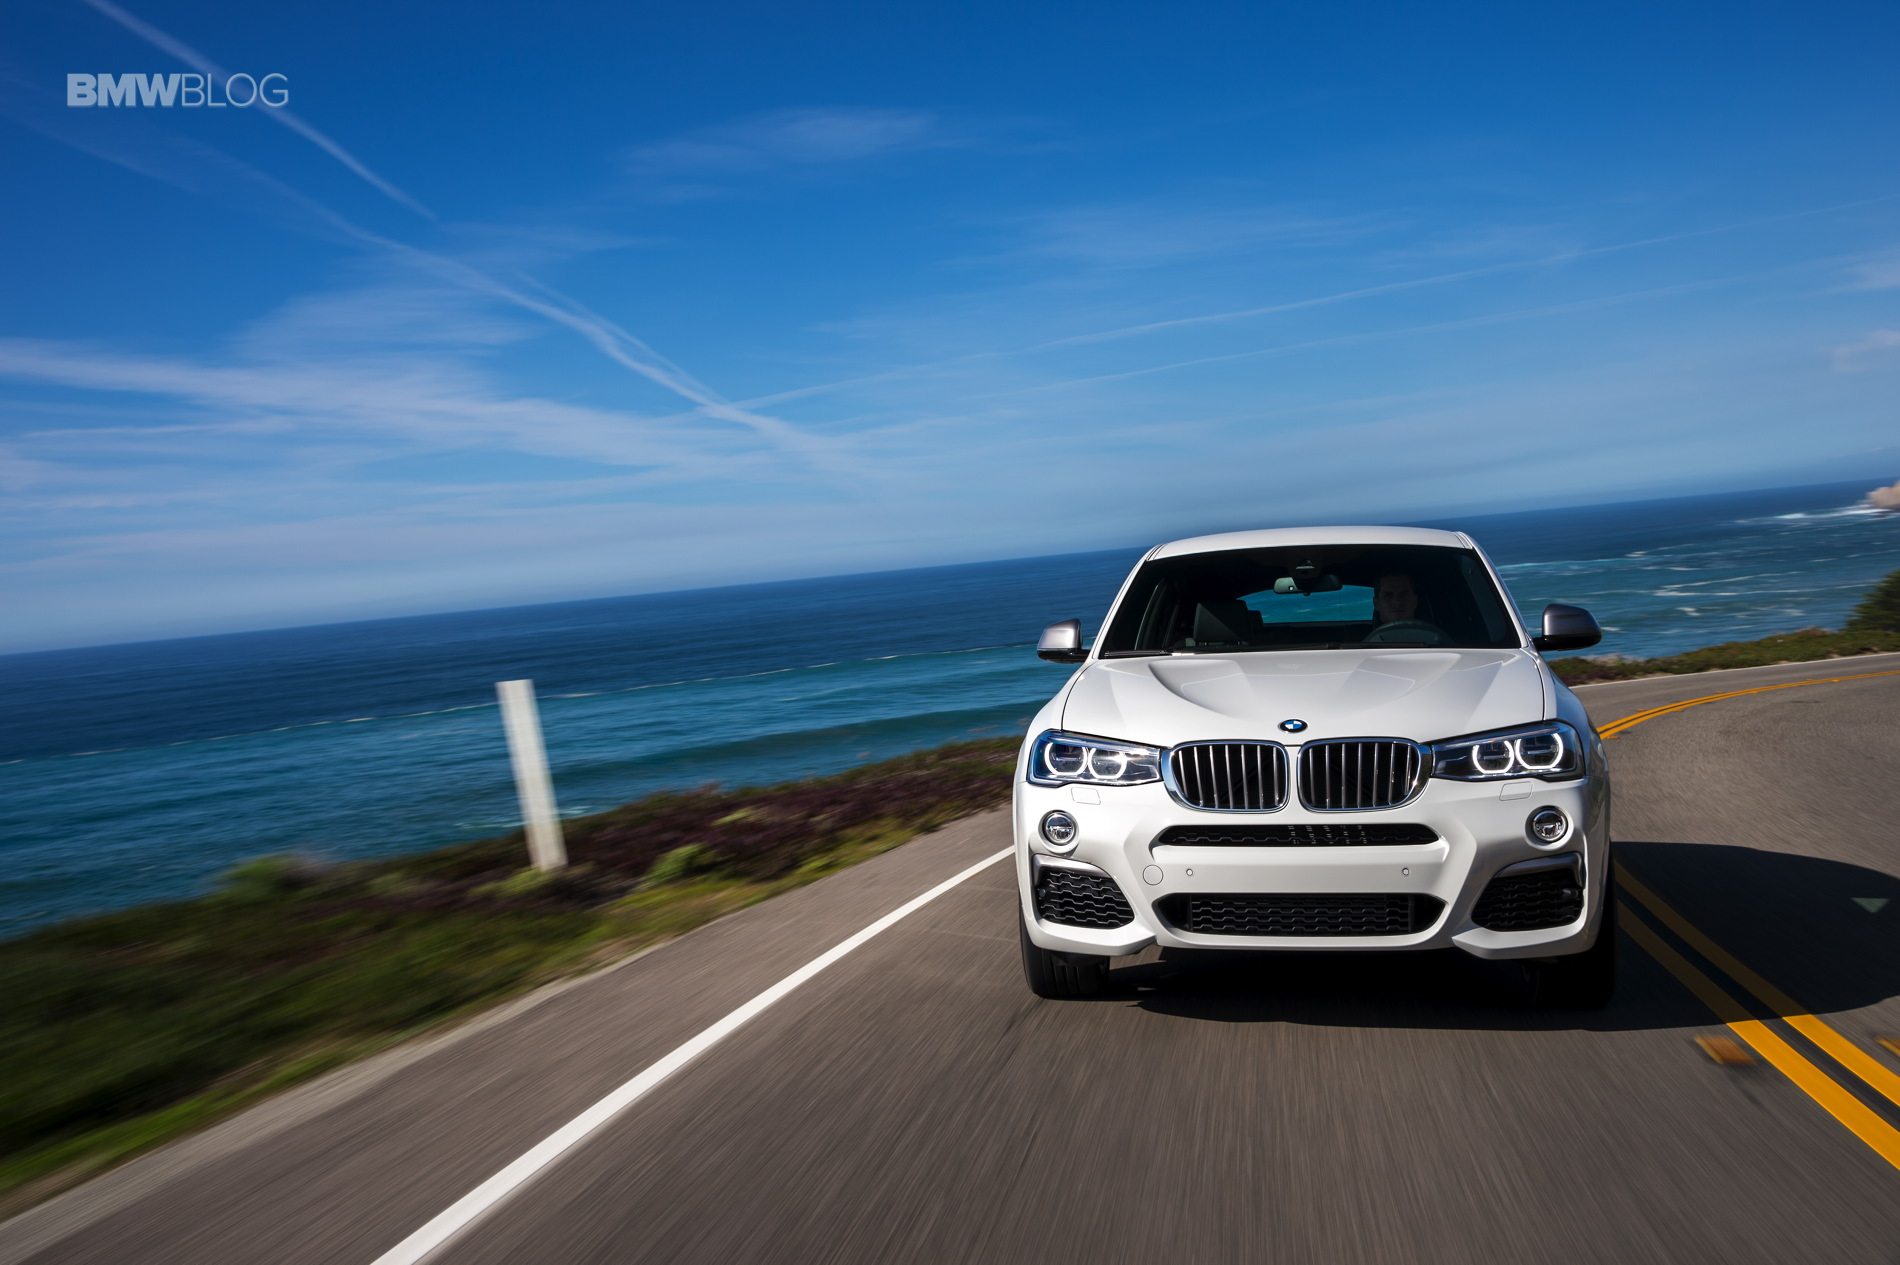 2016 BMW X4 M40i test drive review 31